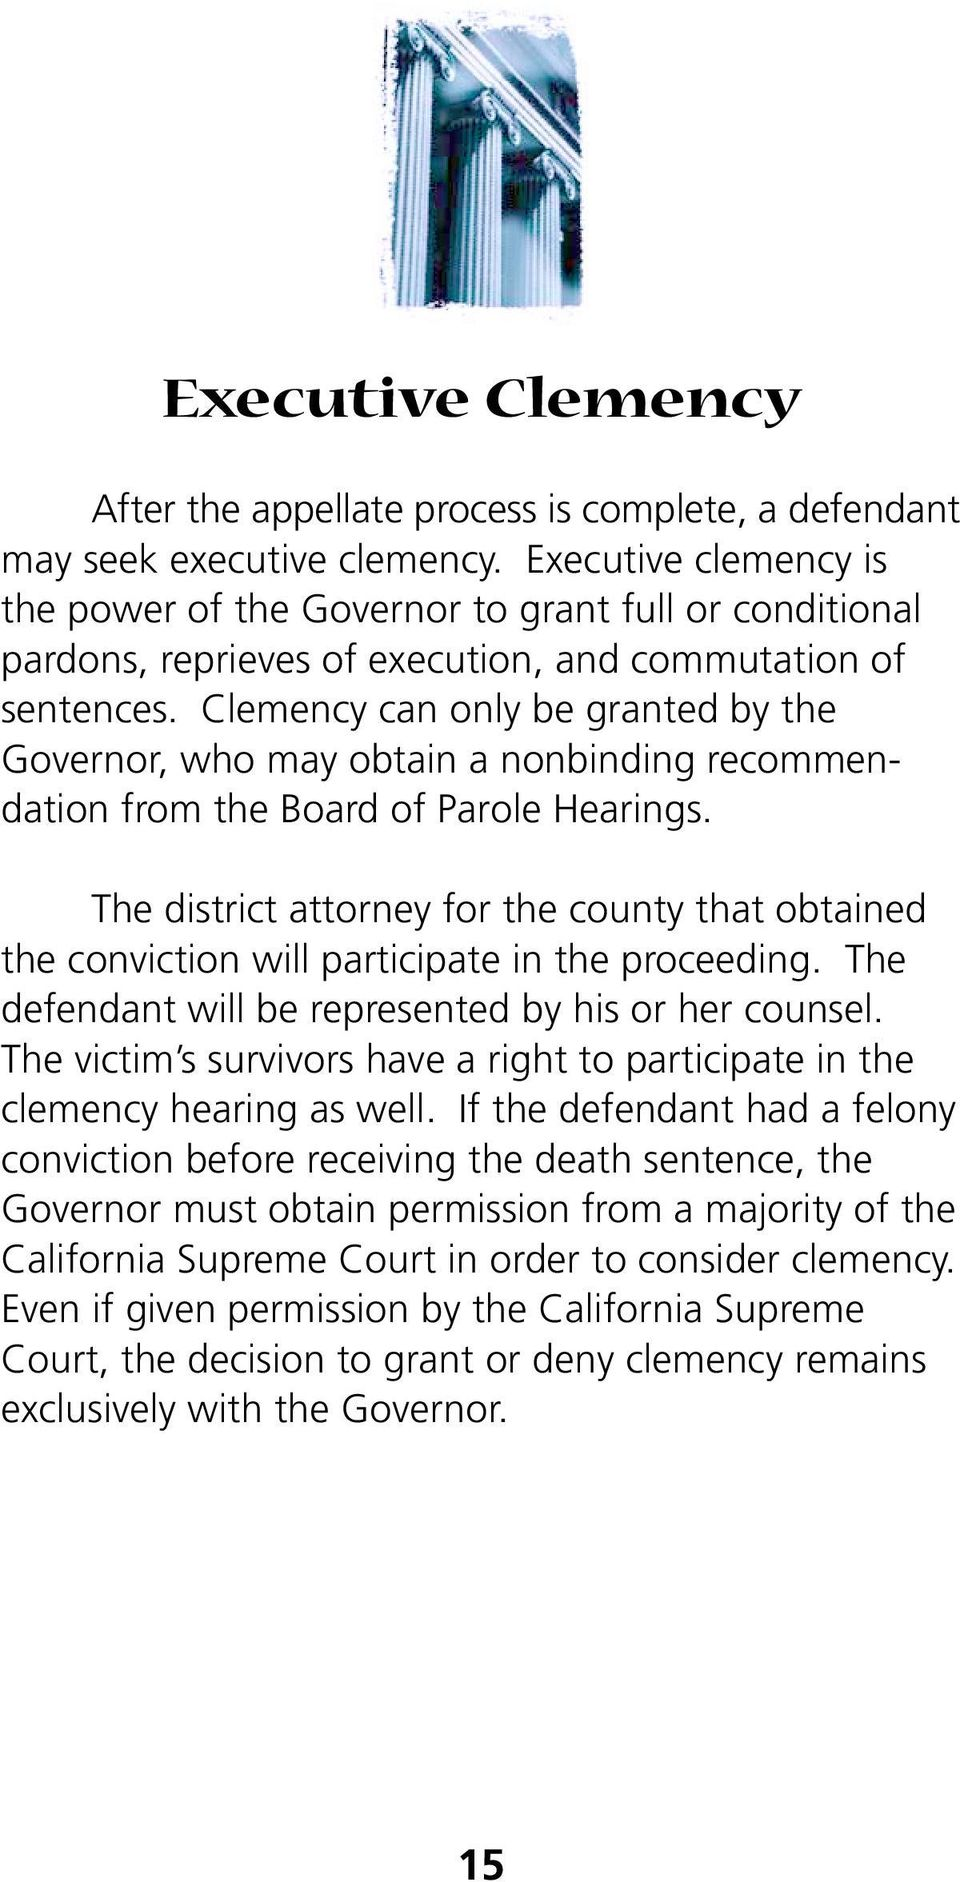 Clemency can only be granted by the Governor, who may obtain a nonbinding recommendation from the Board of Parole Hearings.